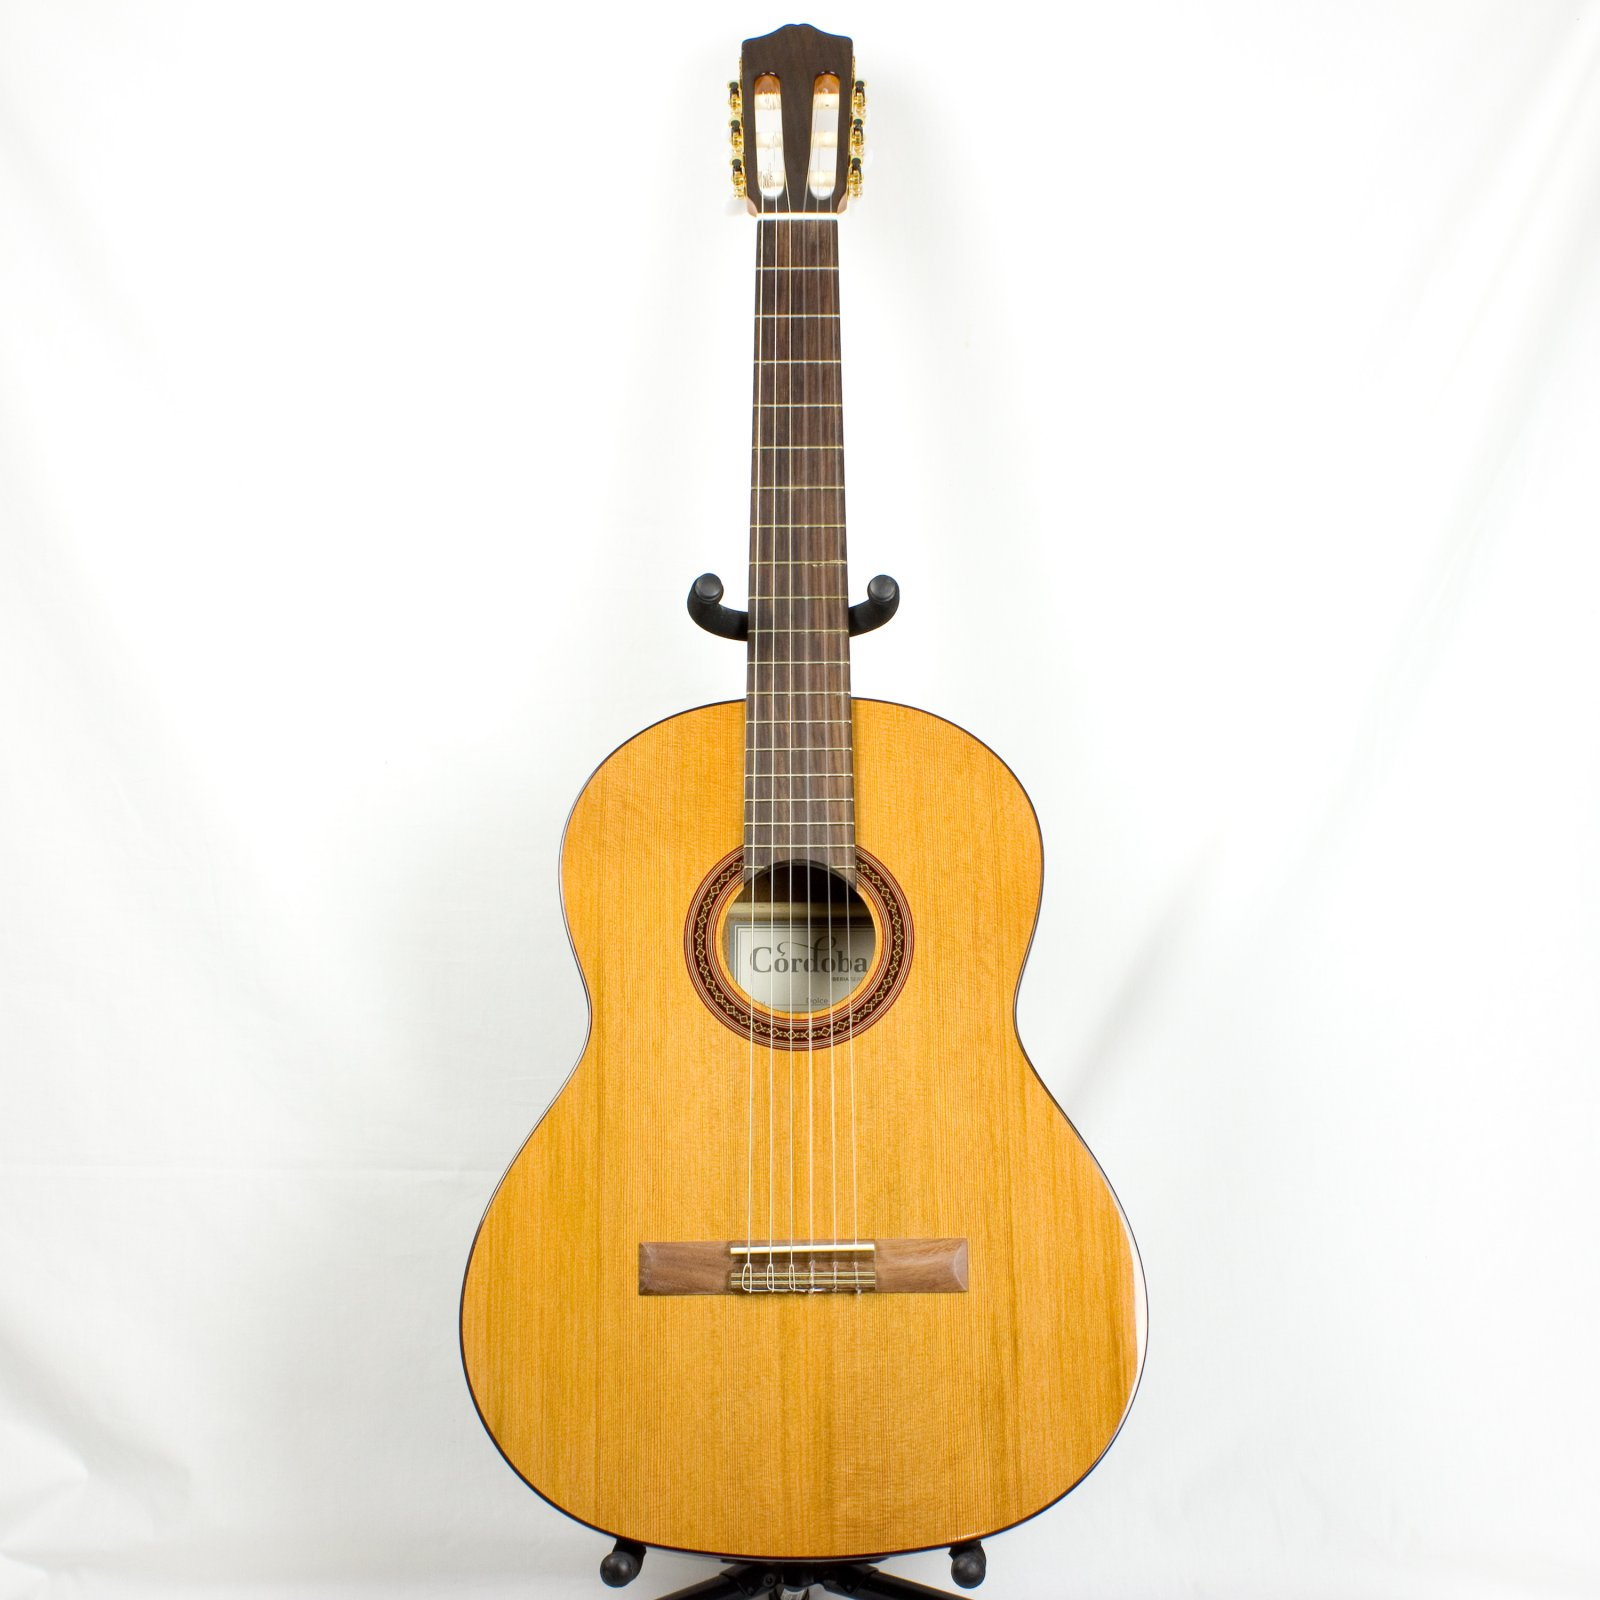 Cordoba Iberia Series Dolce Classical Guitar (USED)